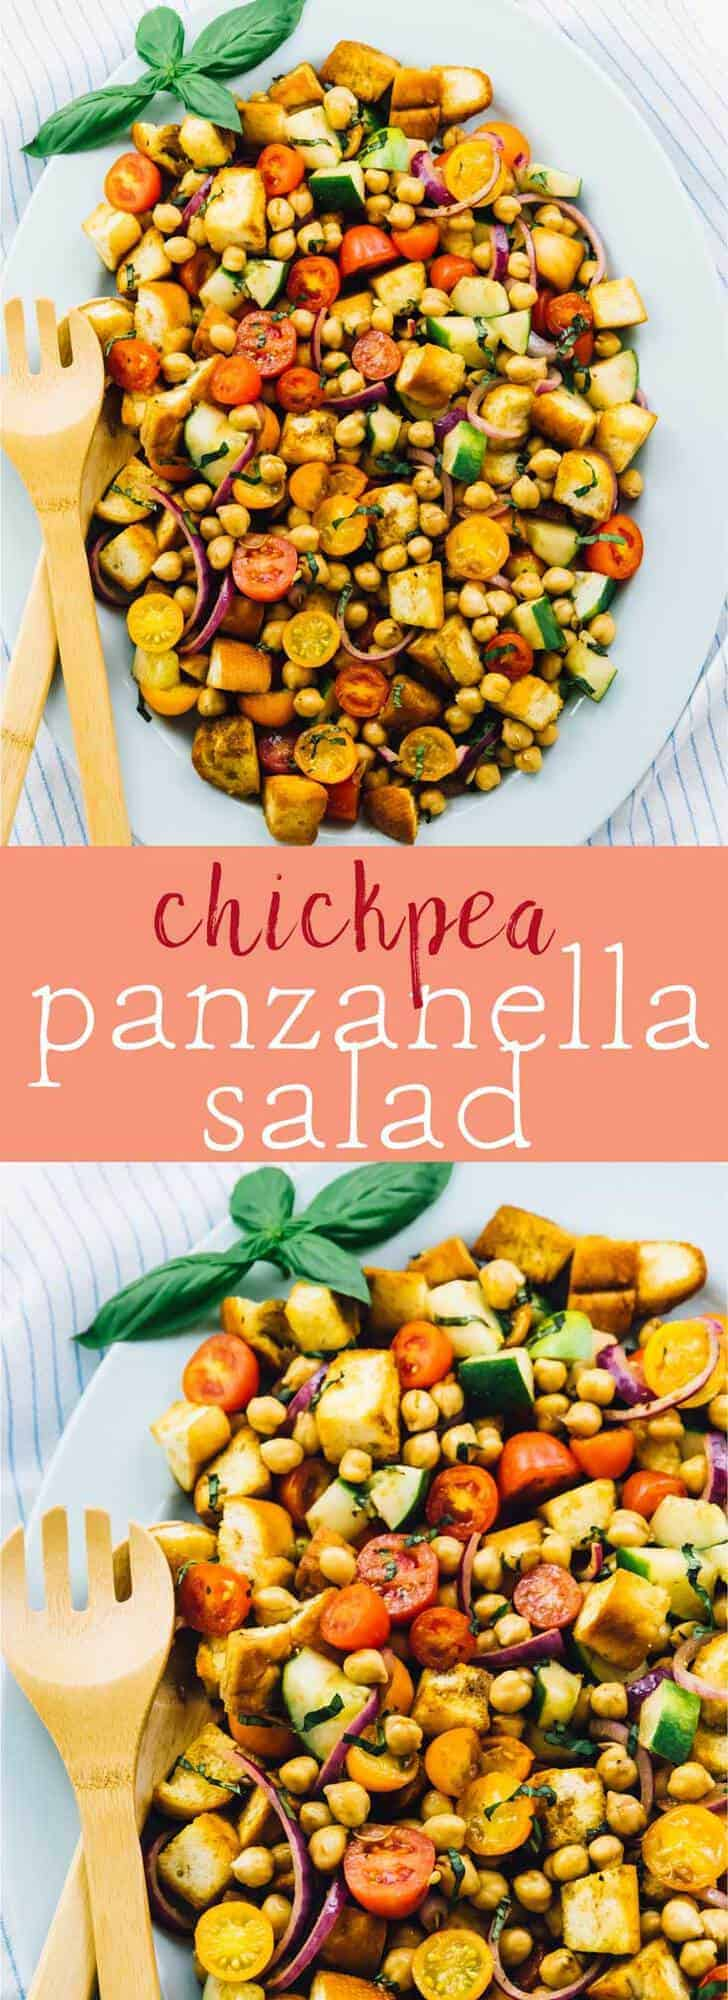 This Chickpea Panzanella Salad is made with only 7 main ingredients and is SO addictive! It's perfect for any get togethers, parties or even a delicious lunch or dinner! via https://jessicainthekitchen.com